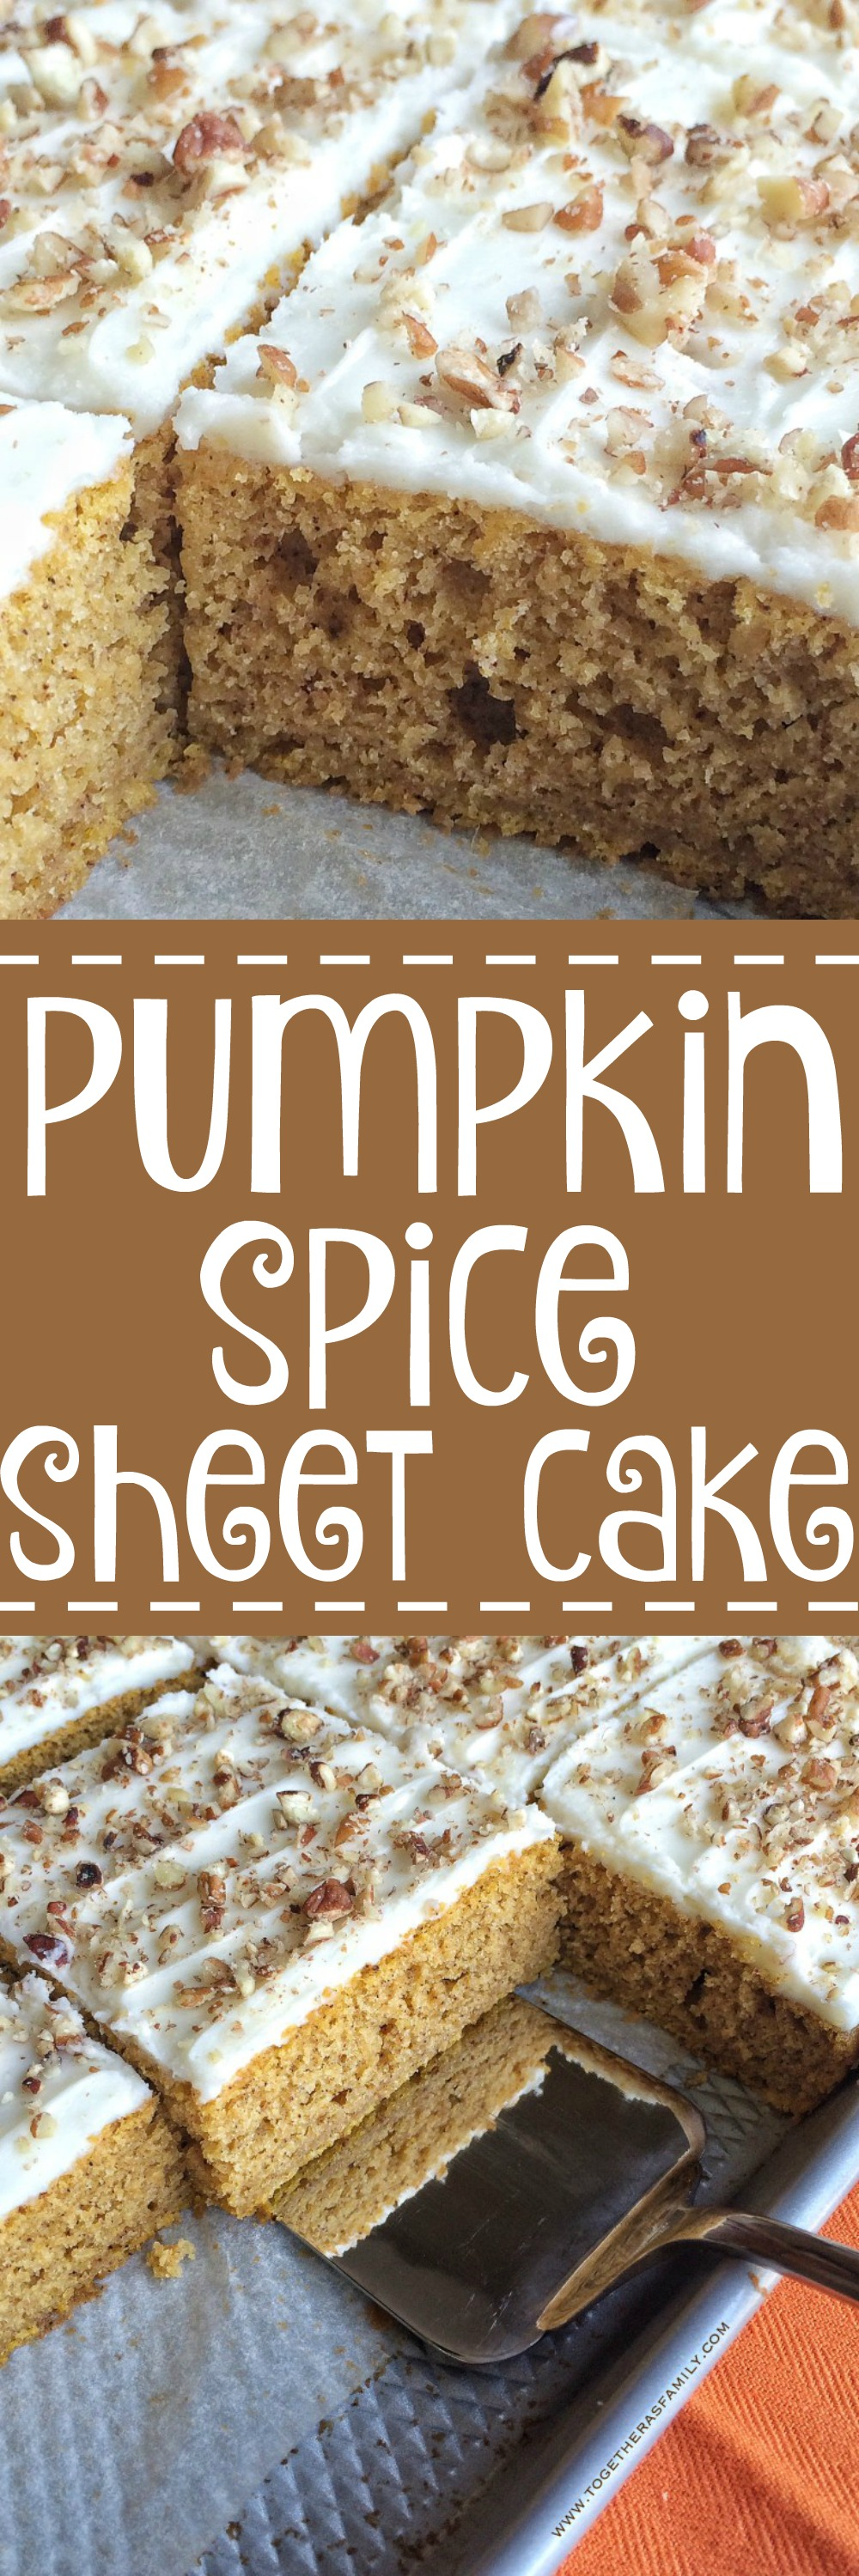 Pumpkin Cake With Cream Cheese Frosting And Pecans